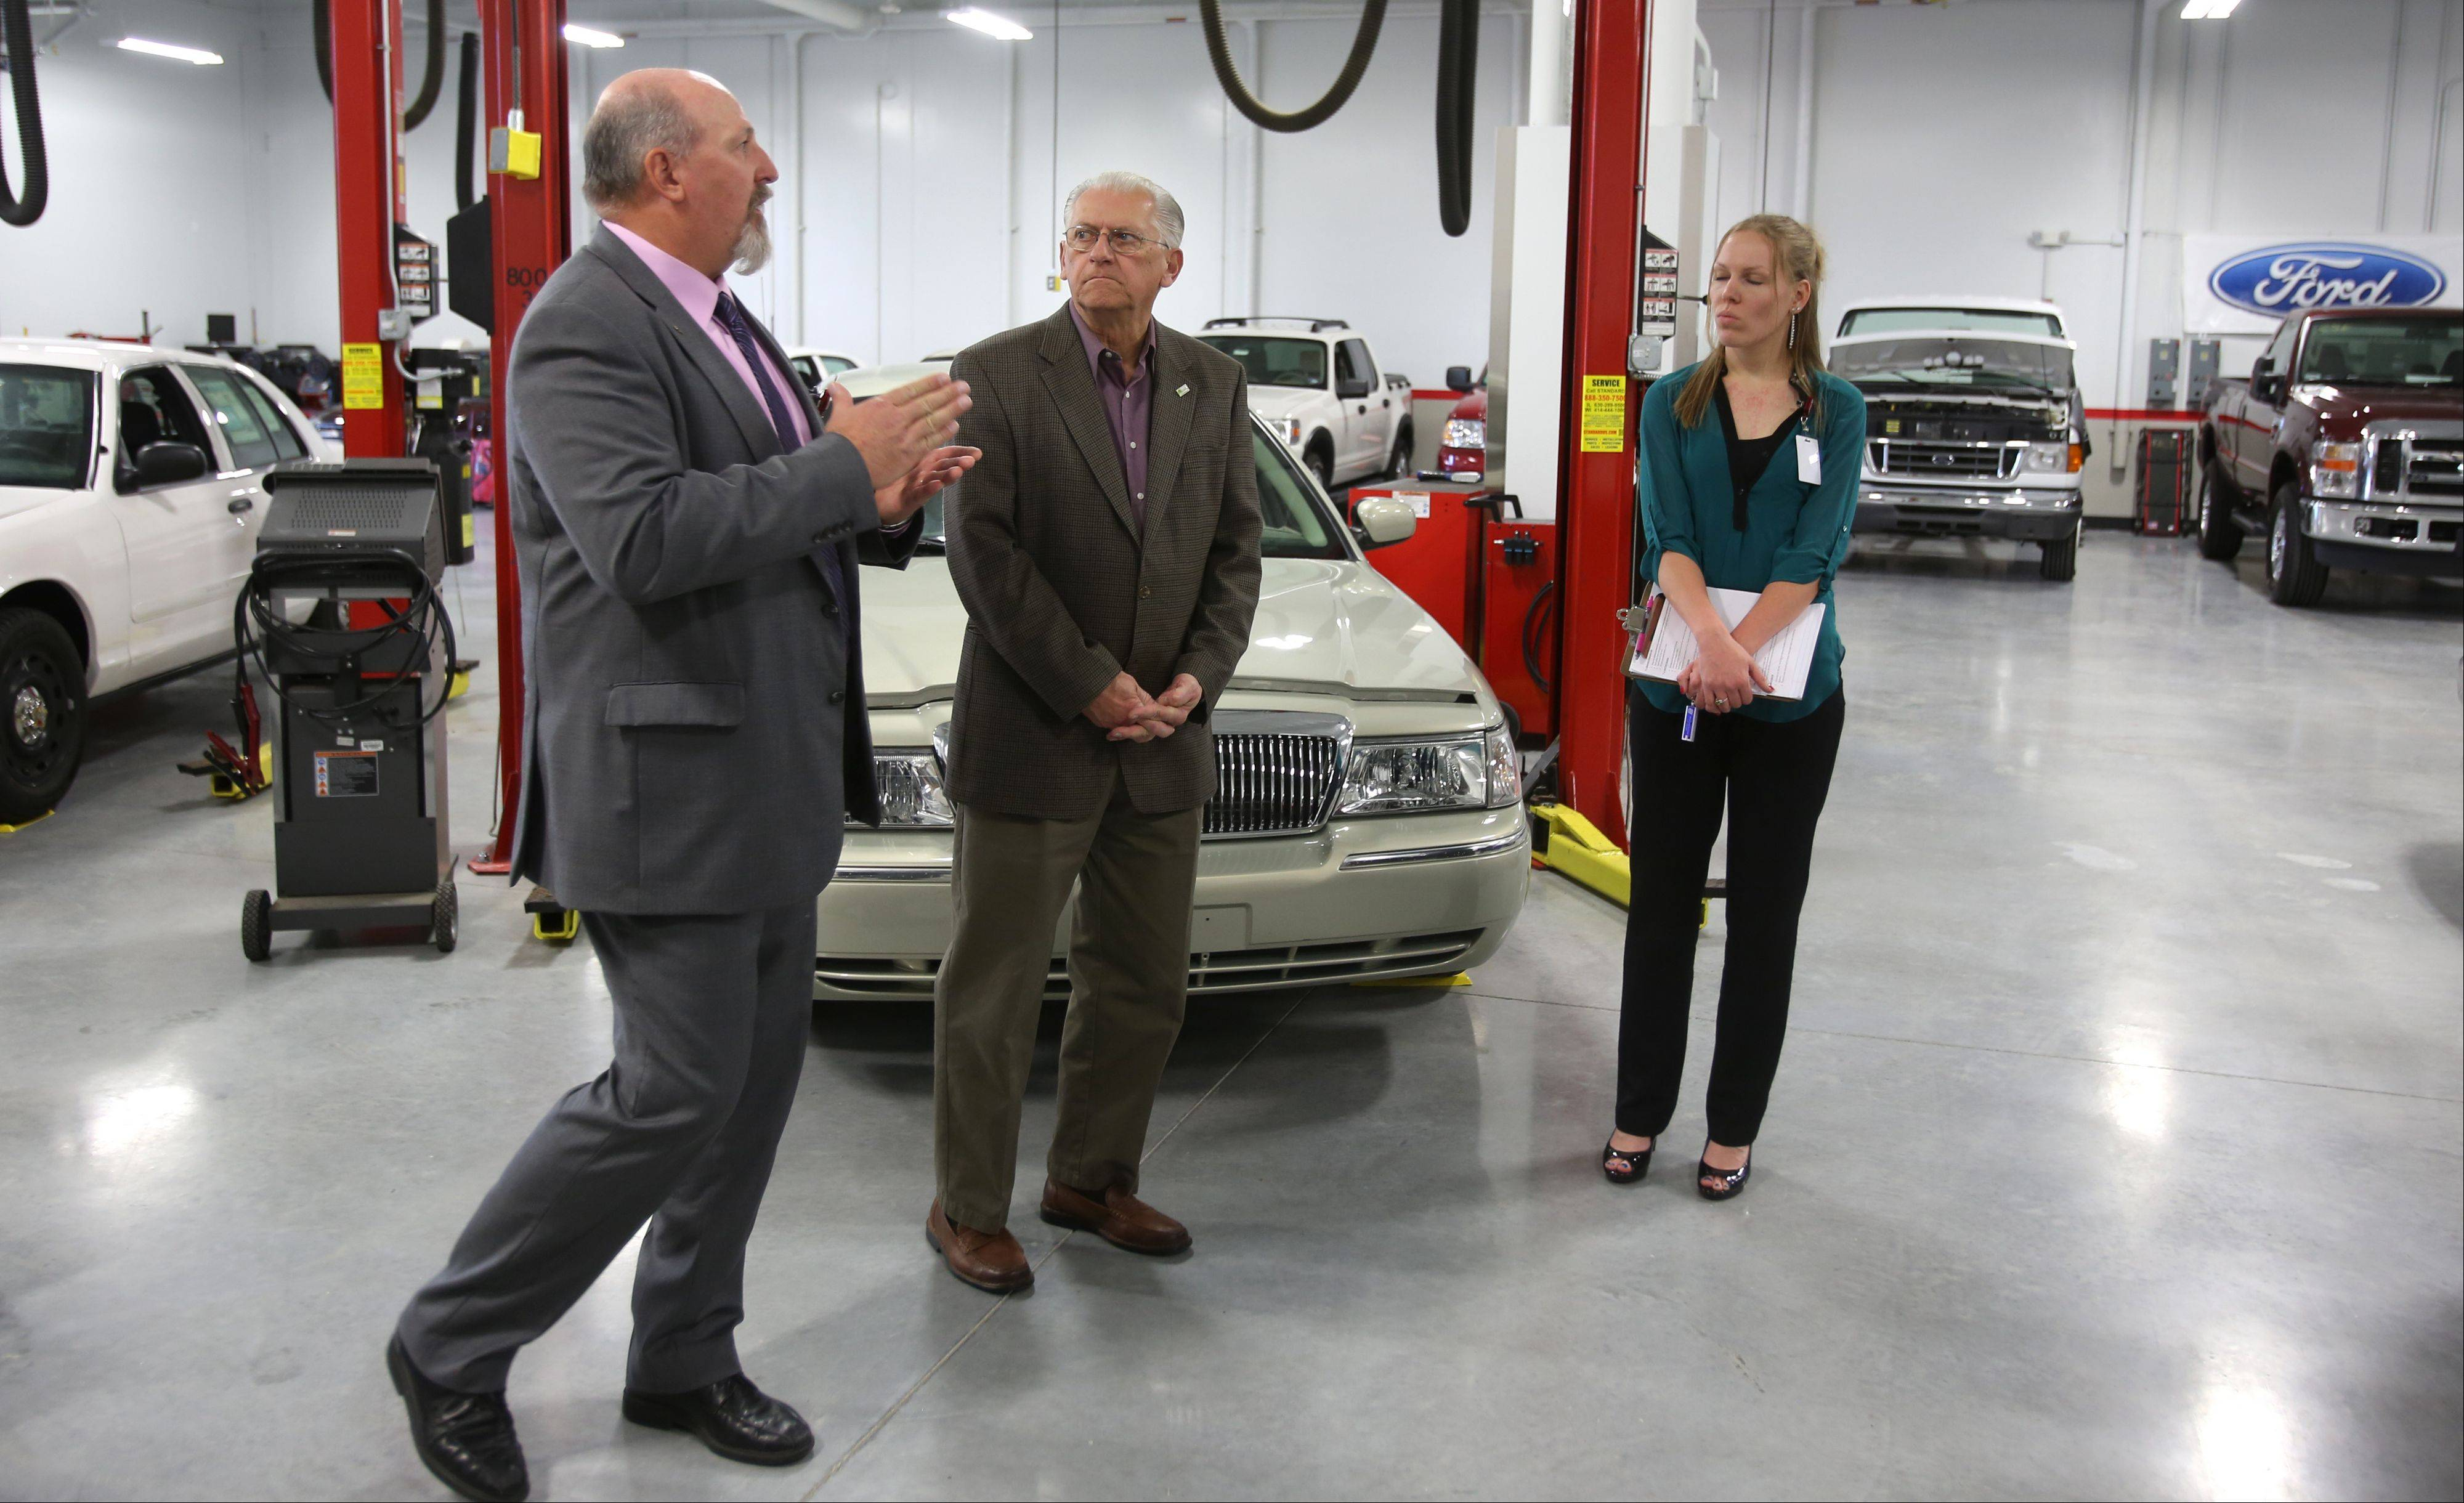 Lisle Mayor Joe Broda, center, listens to local marketing manager Mike Vivona, left, discuss the new UTI campus in Lisle. At right is Kim Norman, tour coordinator.